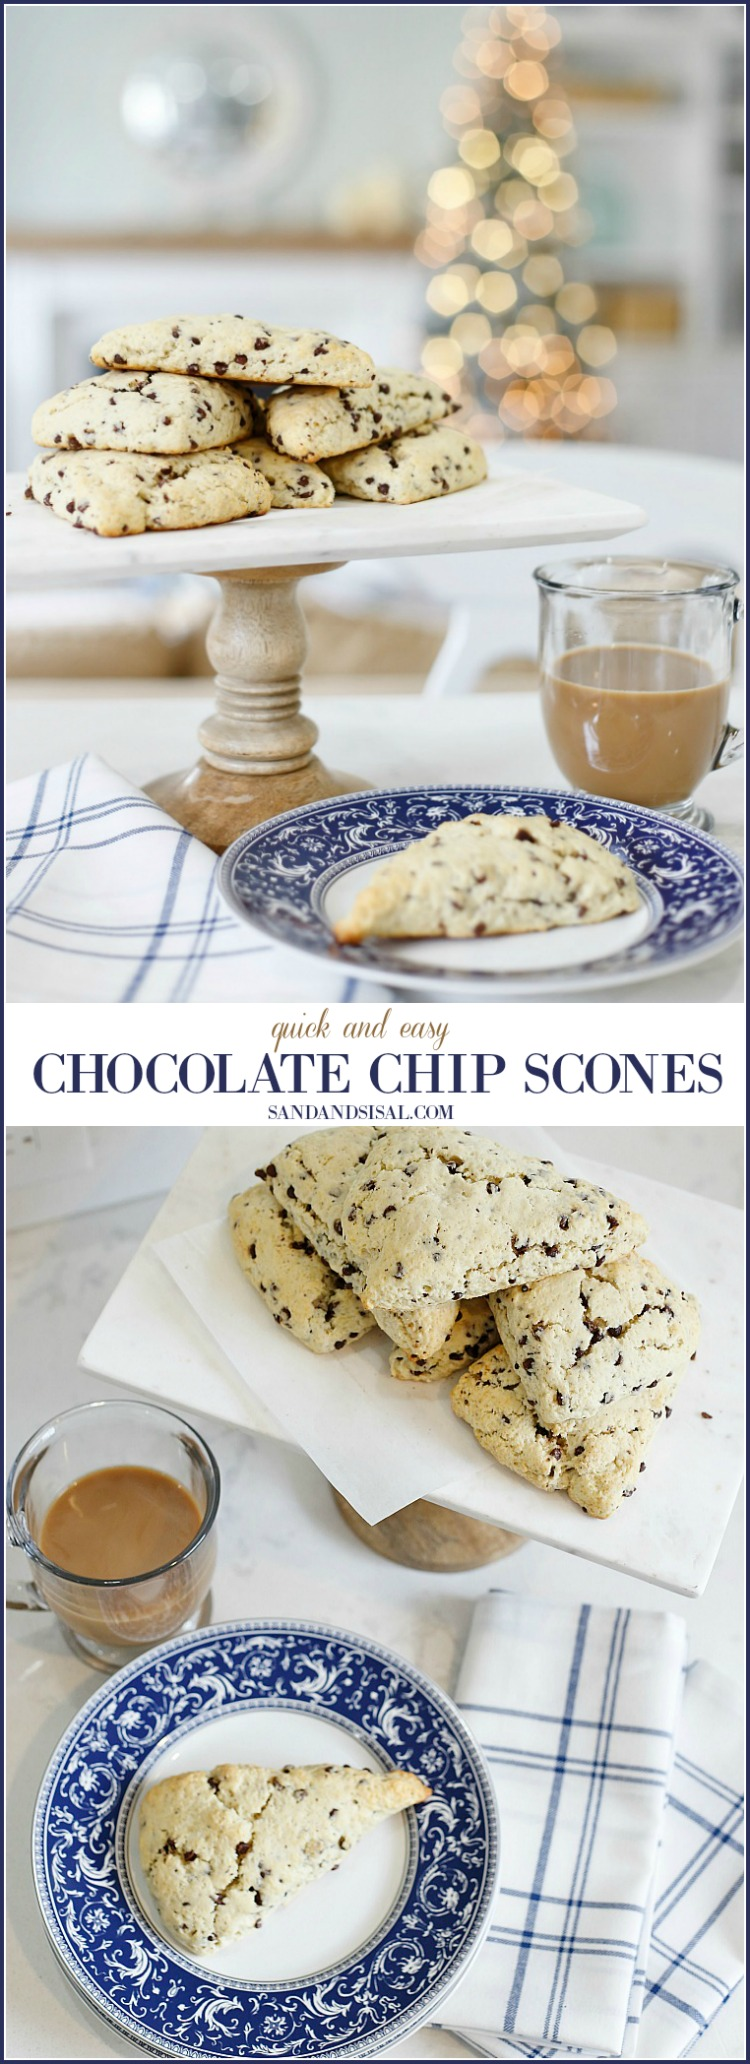 Quick and Easy Chocolate Chip Scones